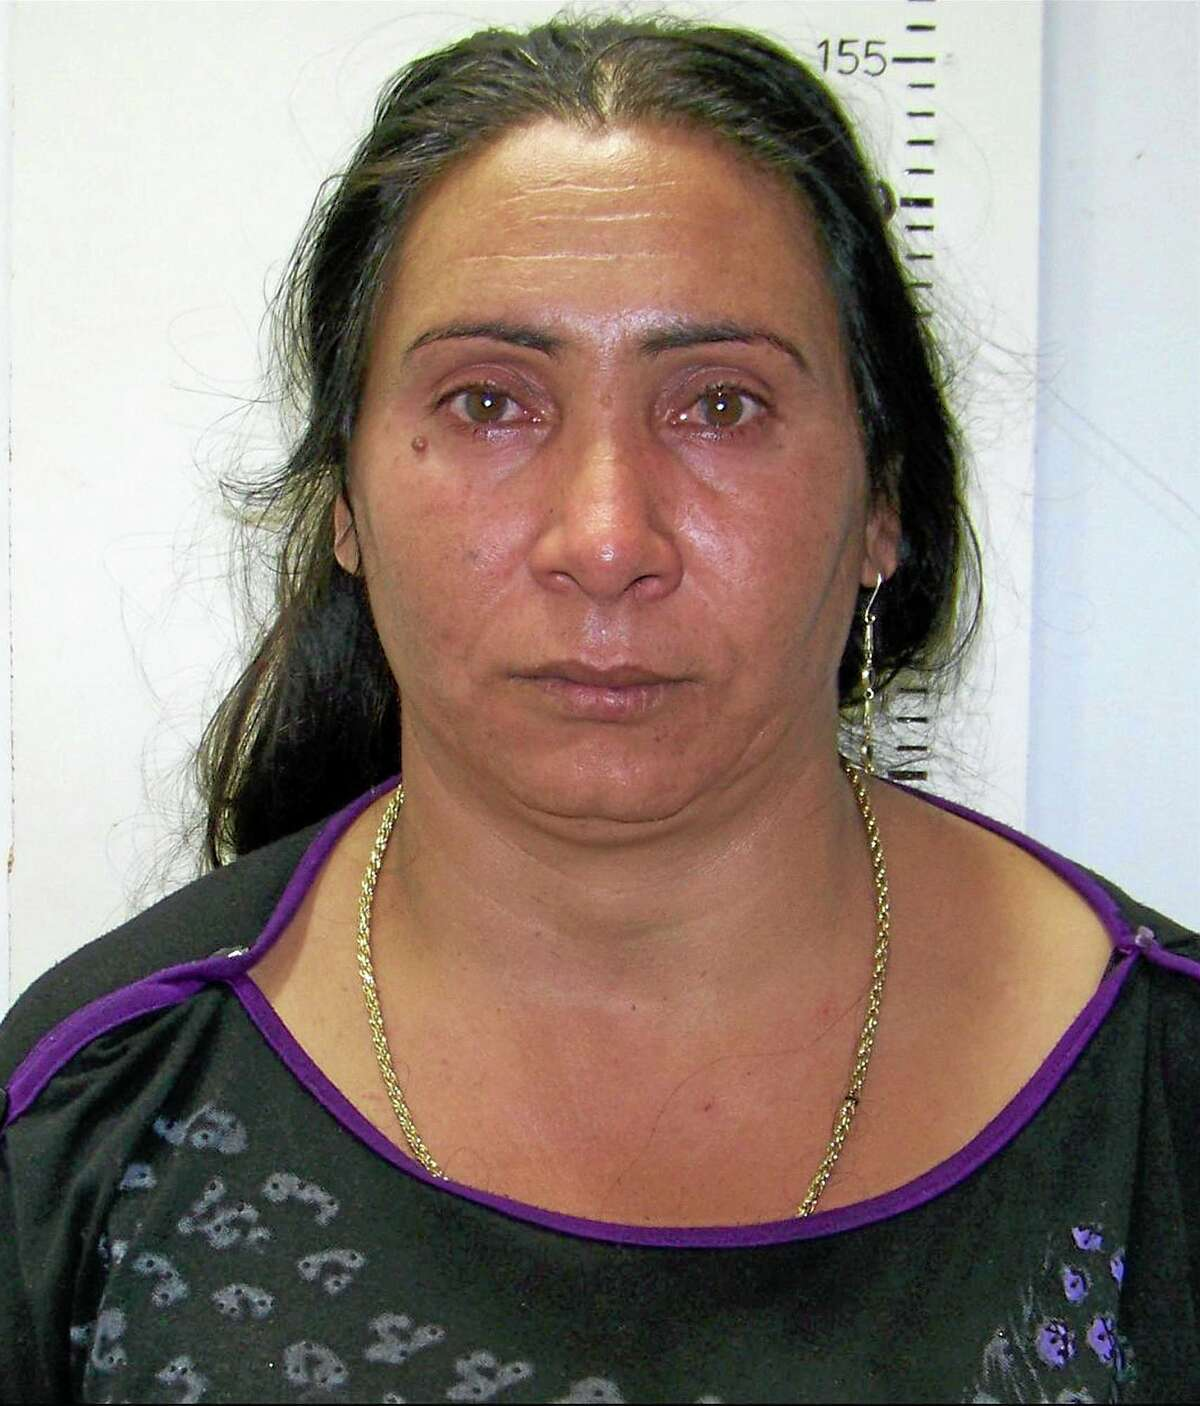 """In this police handout photo taken on Thursday , Oct. 17, 2013, Greek Roma, Eleftheria Dimopoulou, 40, or Selini Sali —a woman who has two separate sets of identity papers. is seen in the Larisa regional police headquarters, Greece. Dimopoulou and her companion have been charged with abducting a little girl found living with them in a Gypsy settlement. Police in Greece on Monday, Oct. 21, 2013, have released the photographs of a couple alleged adductors of a girl known """"Maria"""" after they were formally taken onto pre-trial custody and an international search for the girl's parents intensified. (AP Photo/Greek Police)"""